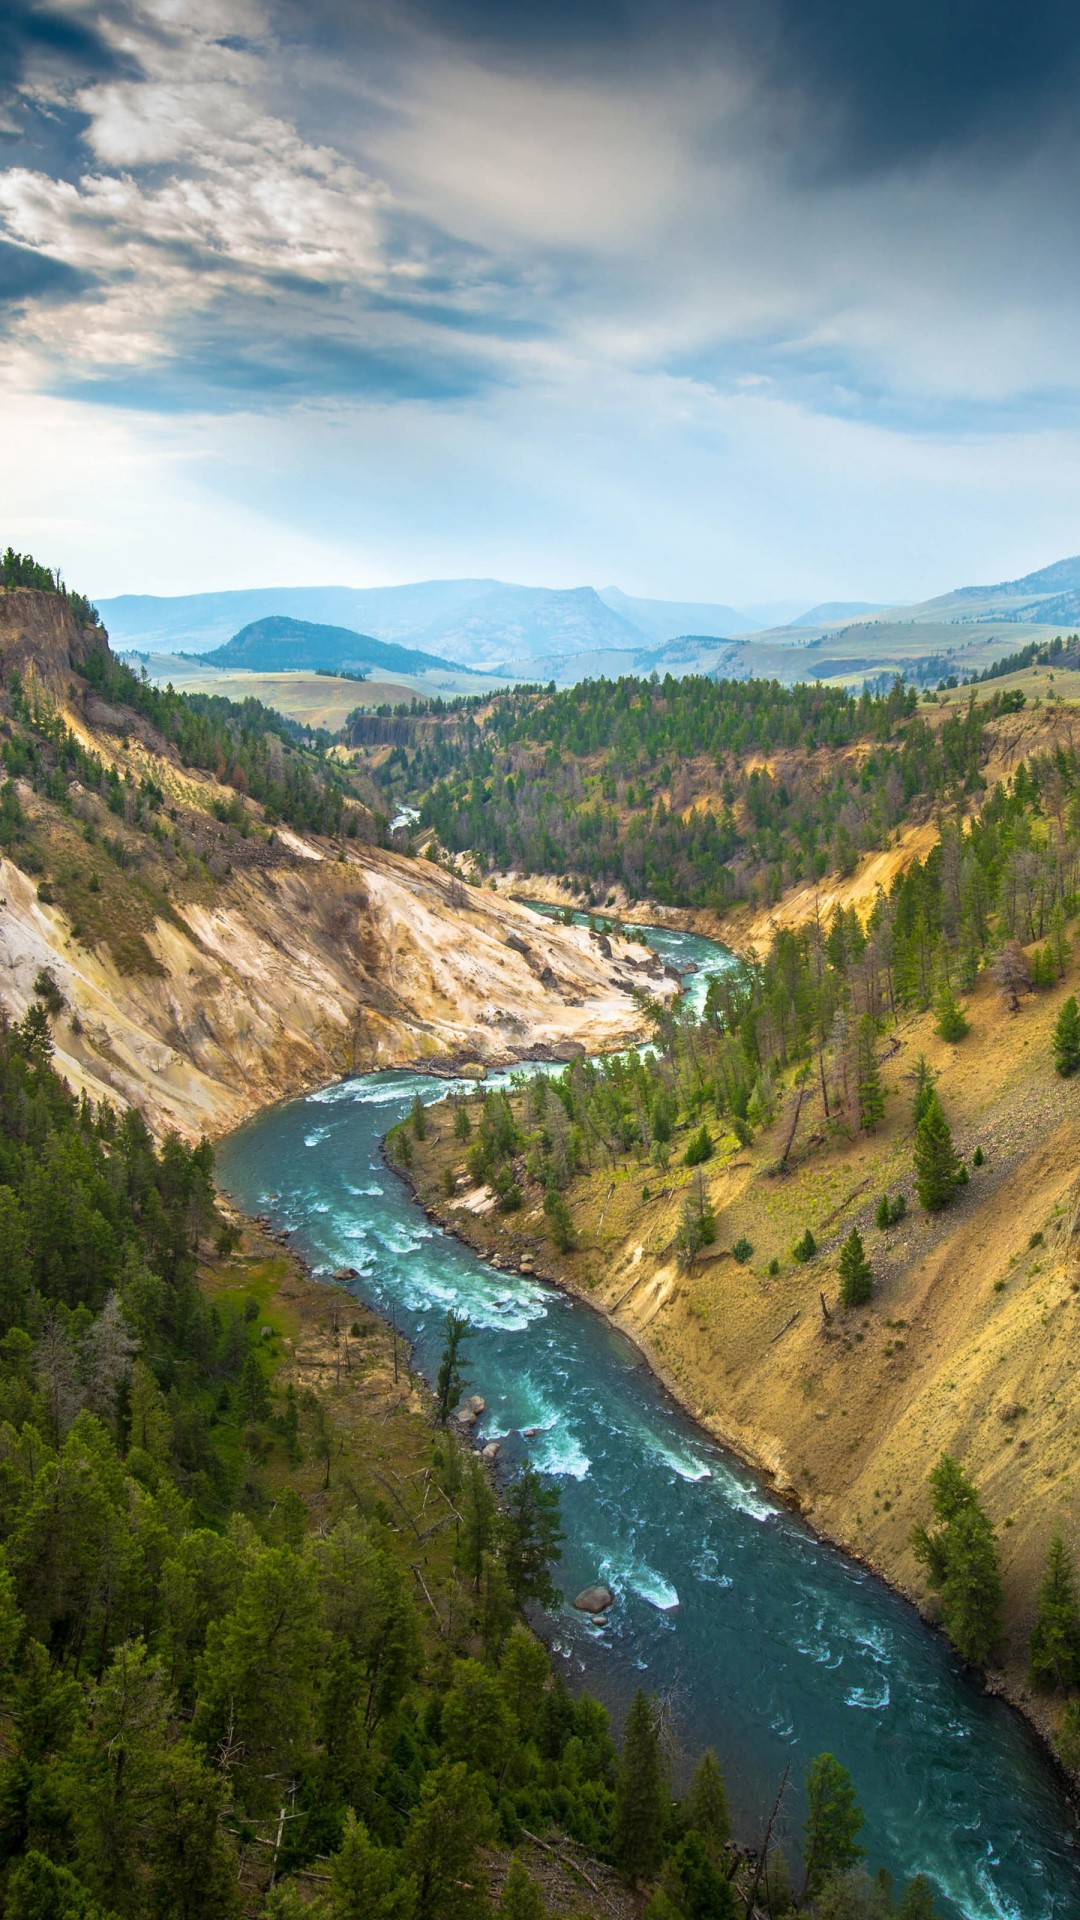 The River, Grand Canyon of Yellowstone National Park, USA Wallpaper for SAMSUNG Galaxy S4